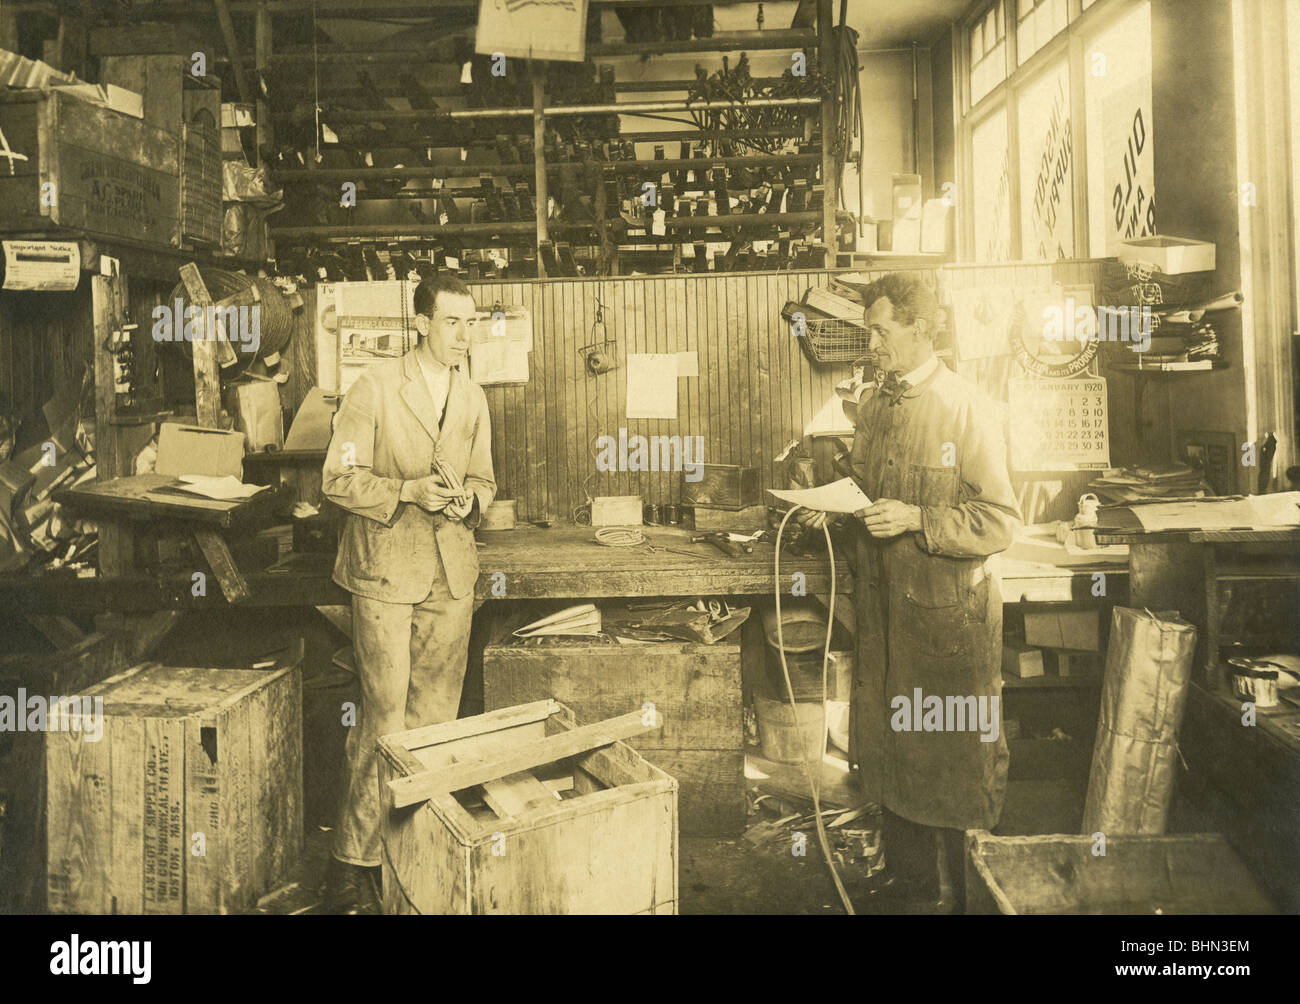 1920 photo of the mechanic's garage at the Linscott Motor Company, 690 Beacon Street, Boston, Massachusetts. Stock Photo